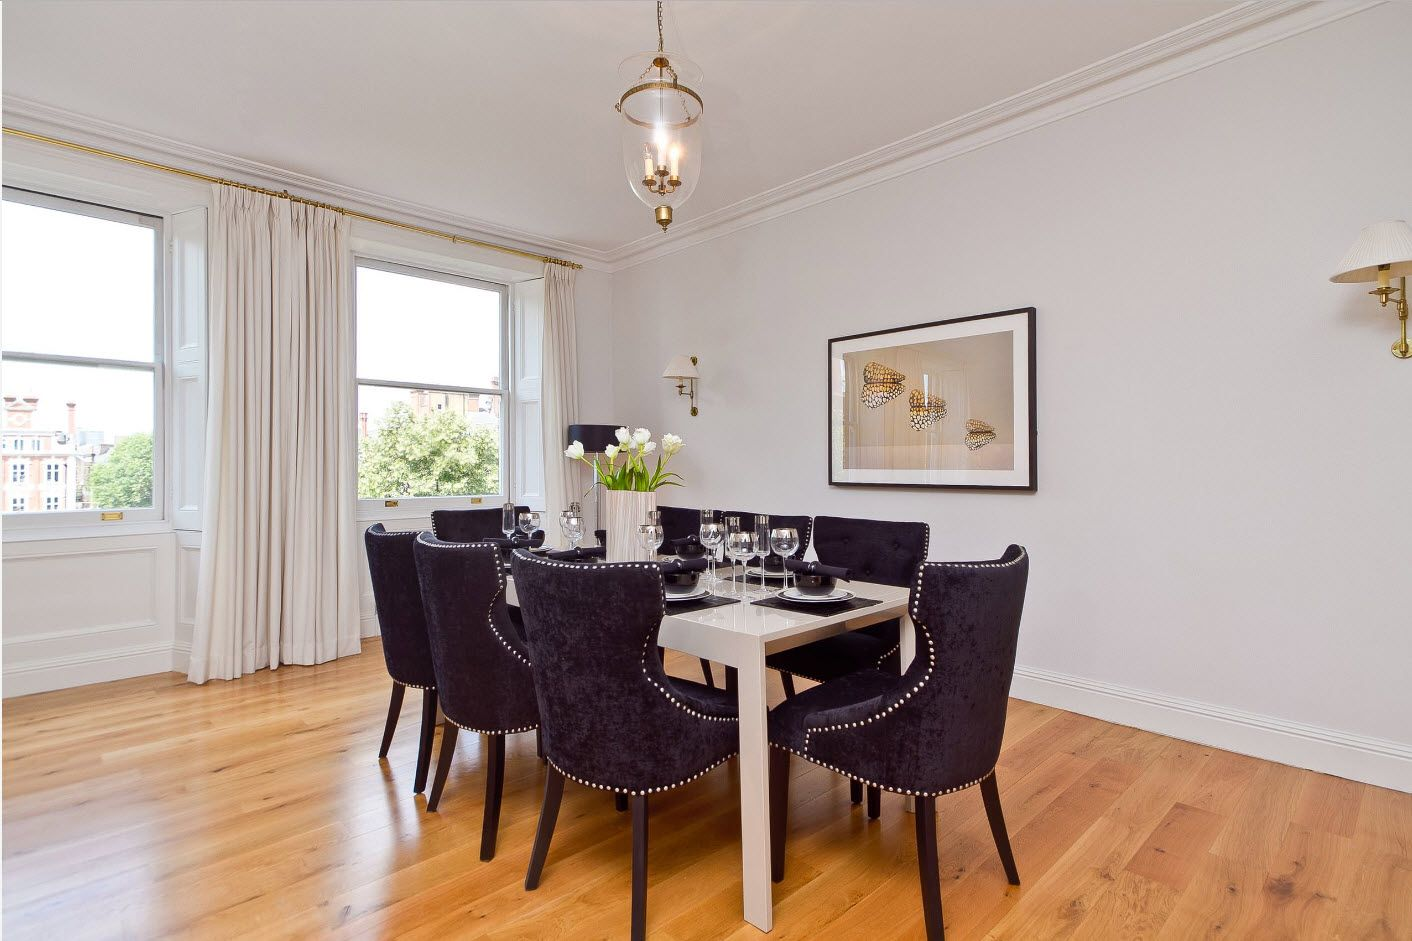 Minimalistic setting in the spacious dining room with dark puple upholstered armchairs